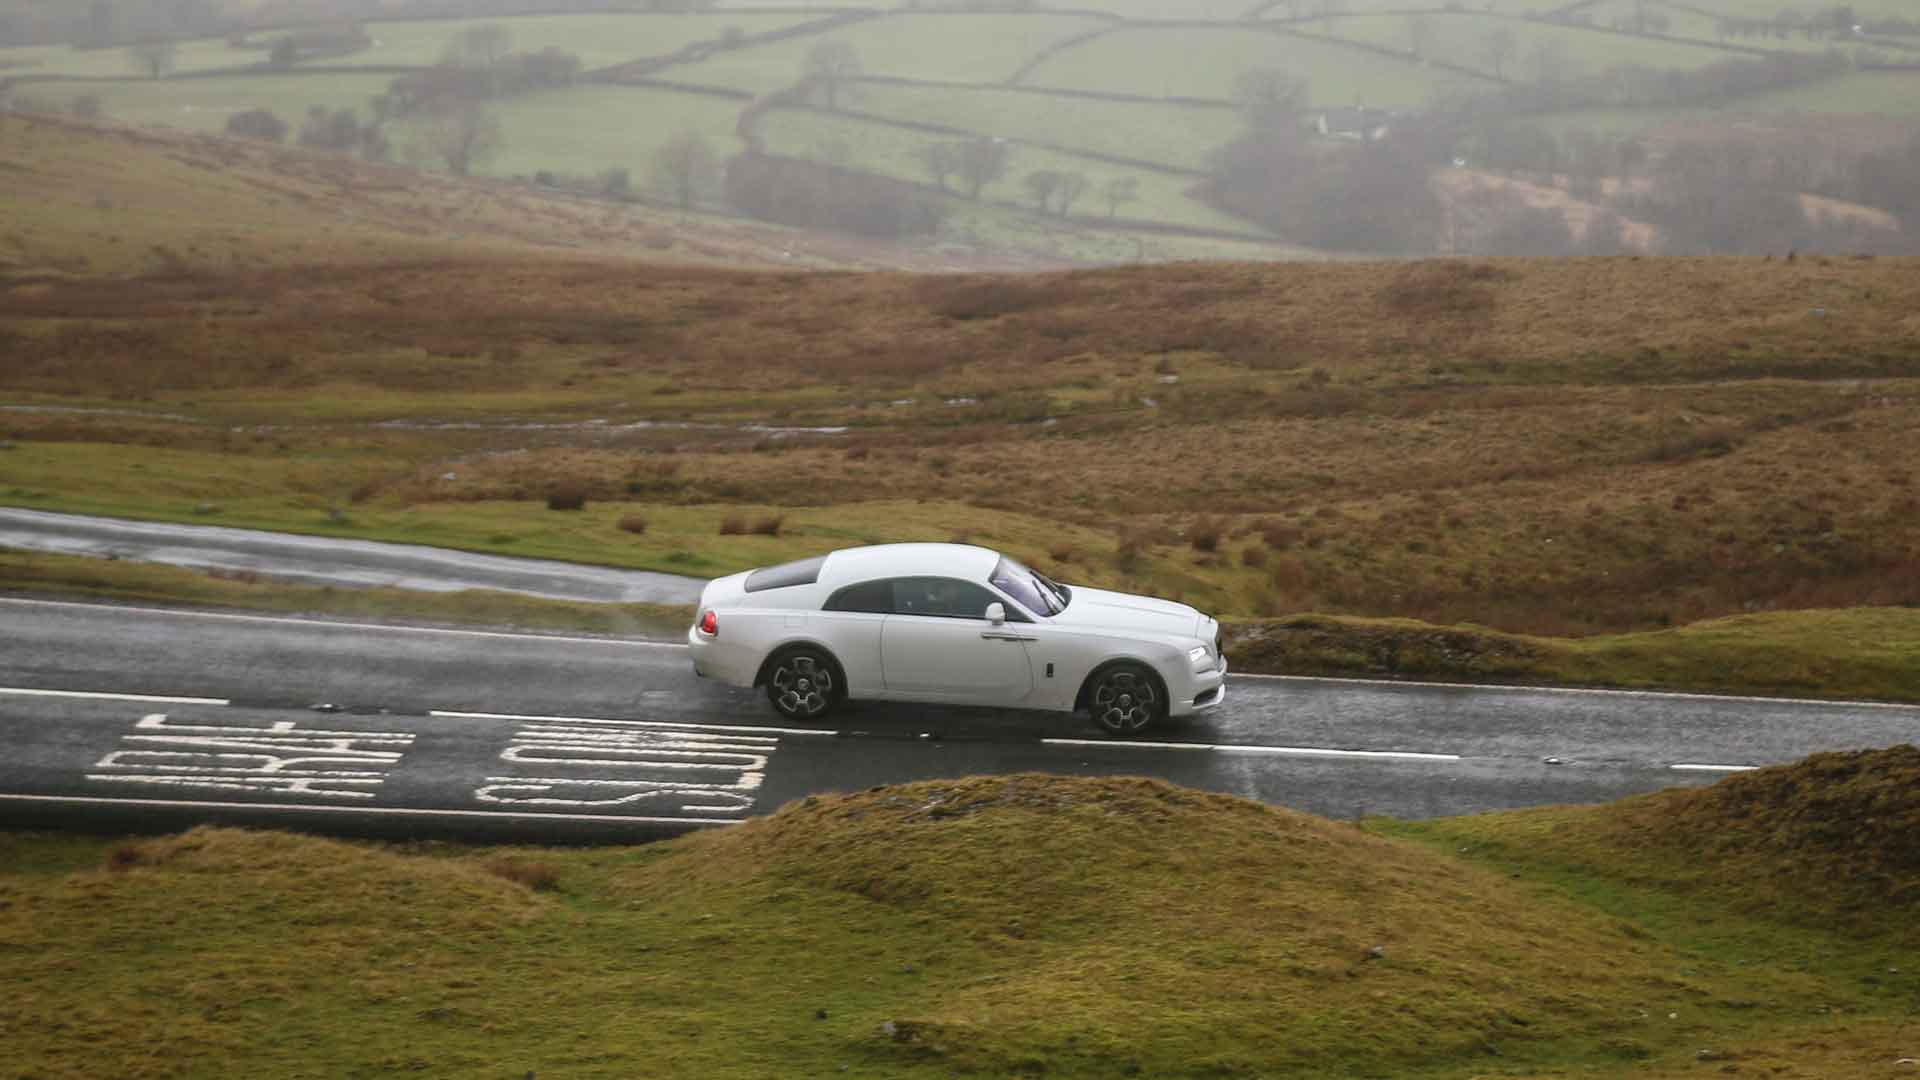 Rolls-Royce Wraith Black Badge in Wales